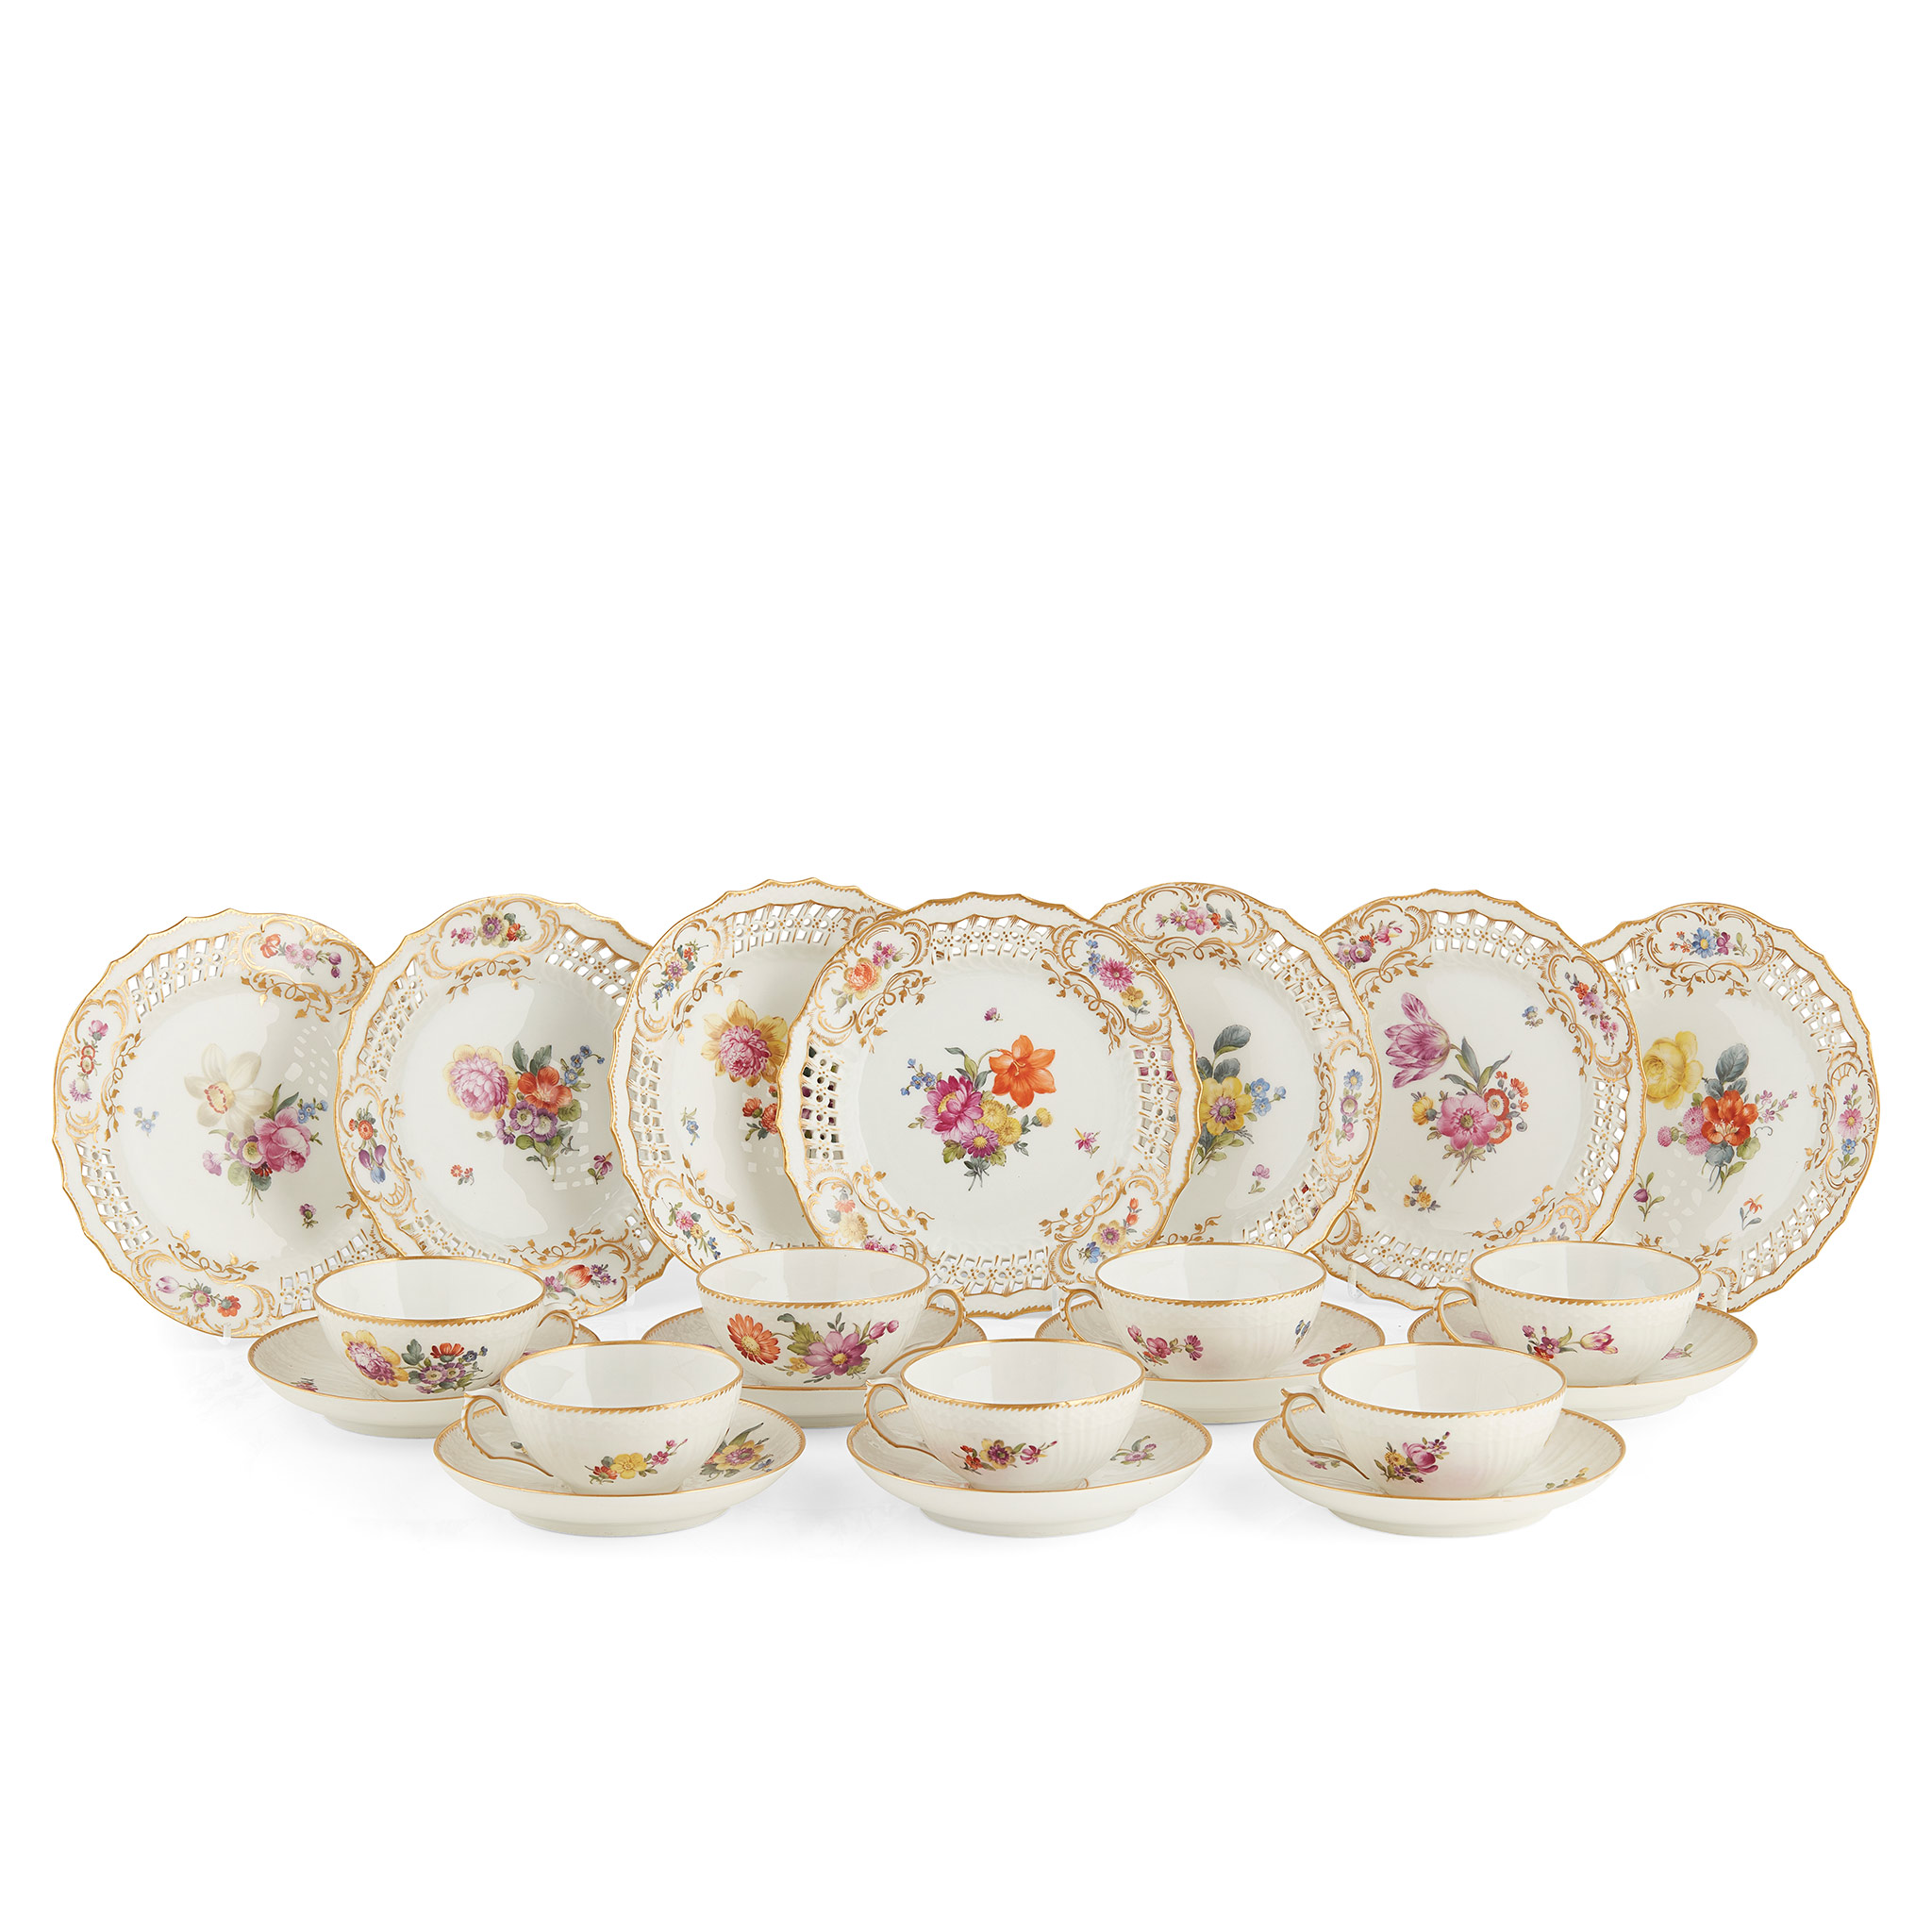 COLLECTION OF ROYAL COPENHAGEN FLORAL PAINTED PORCELAIN LATE 19TH / EARLY 20TH CENTURY